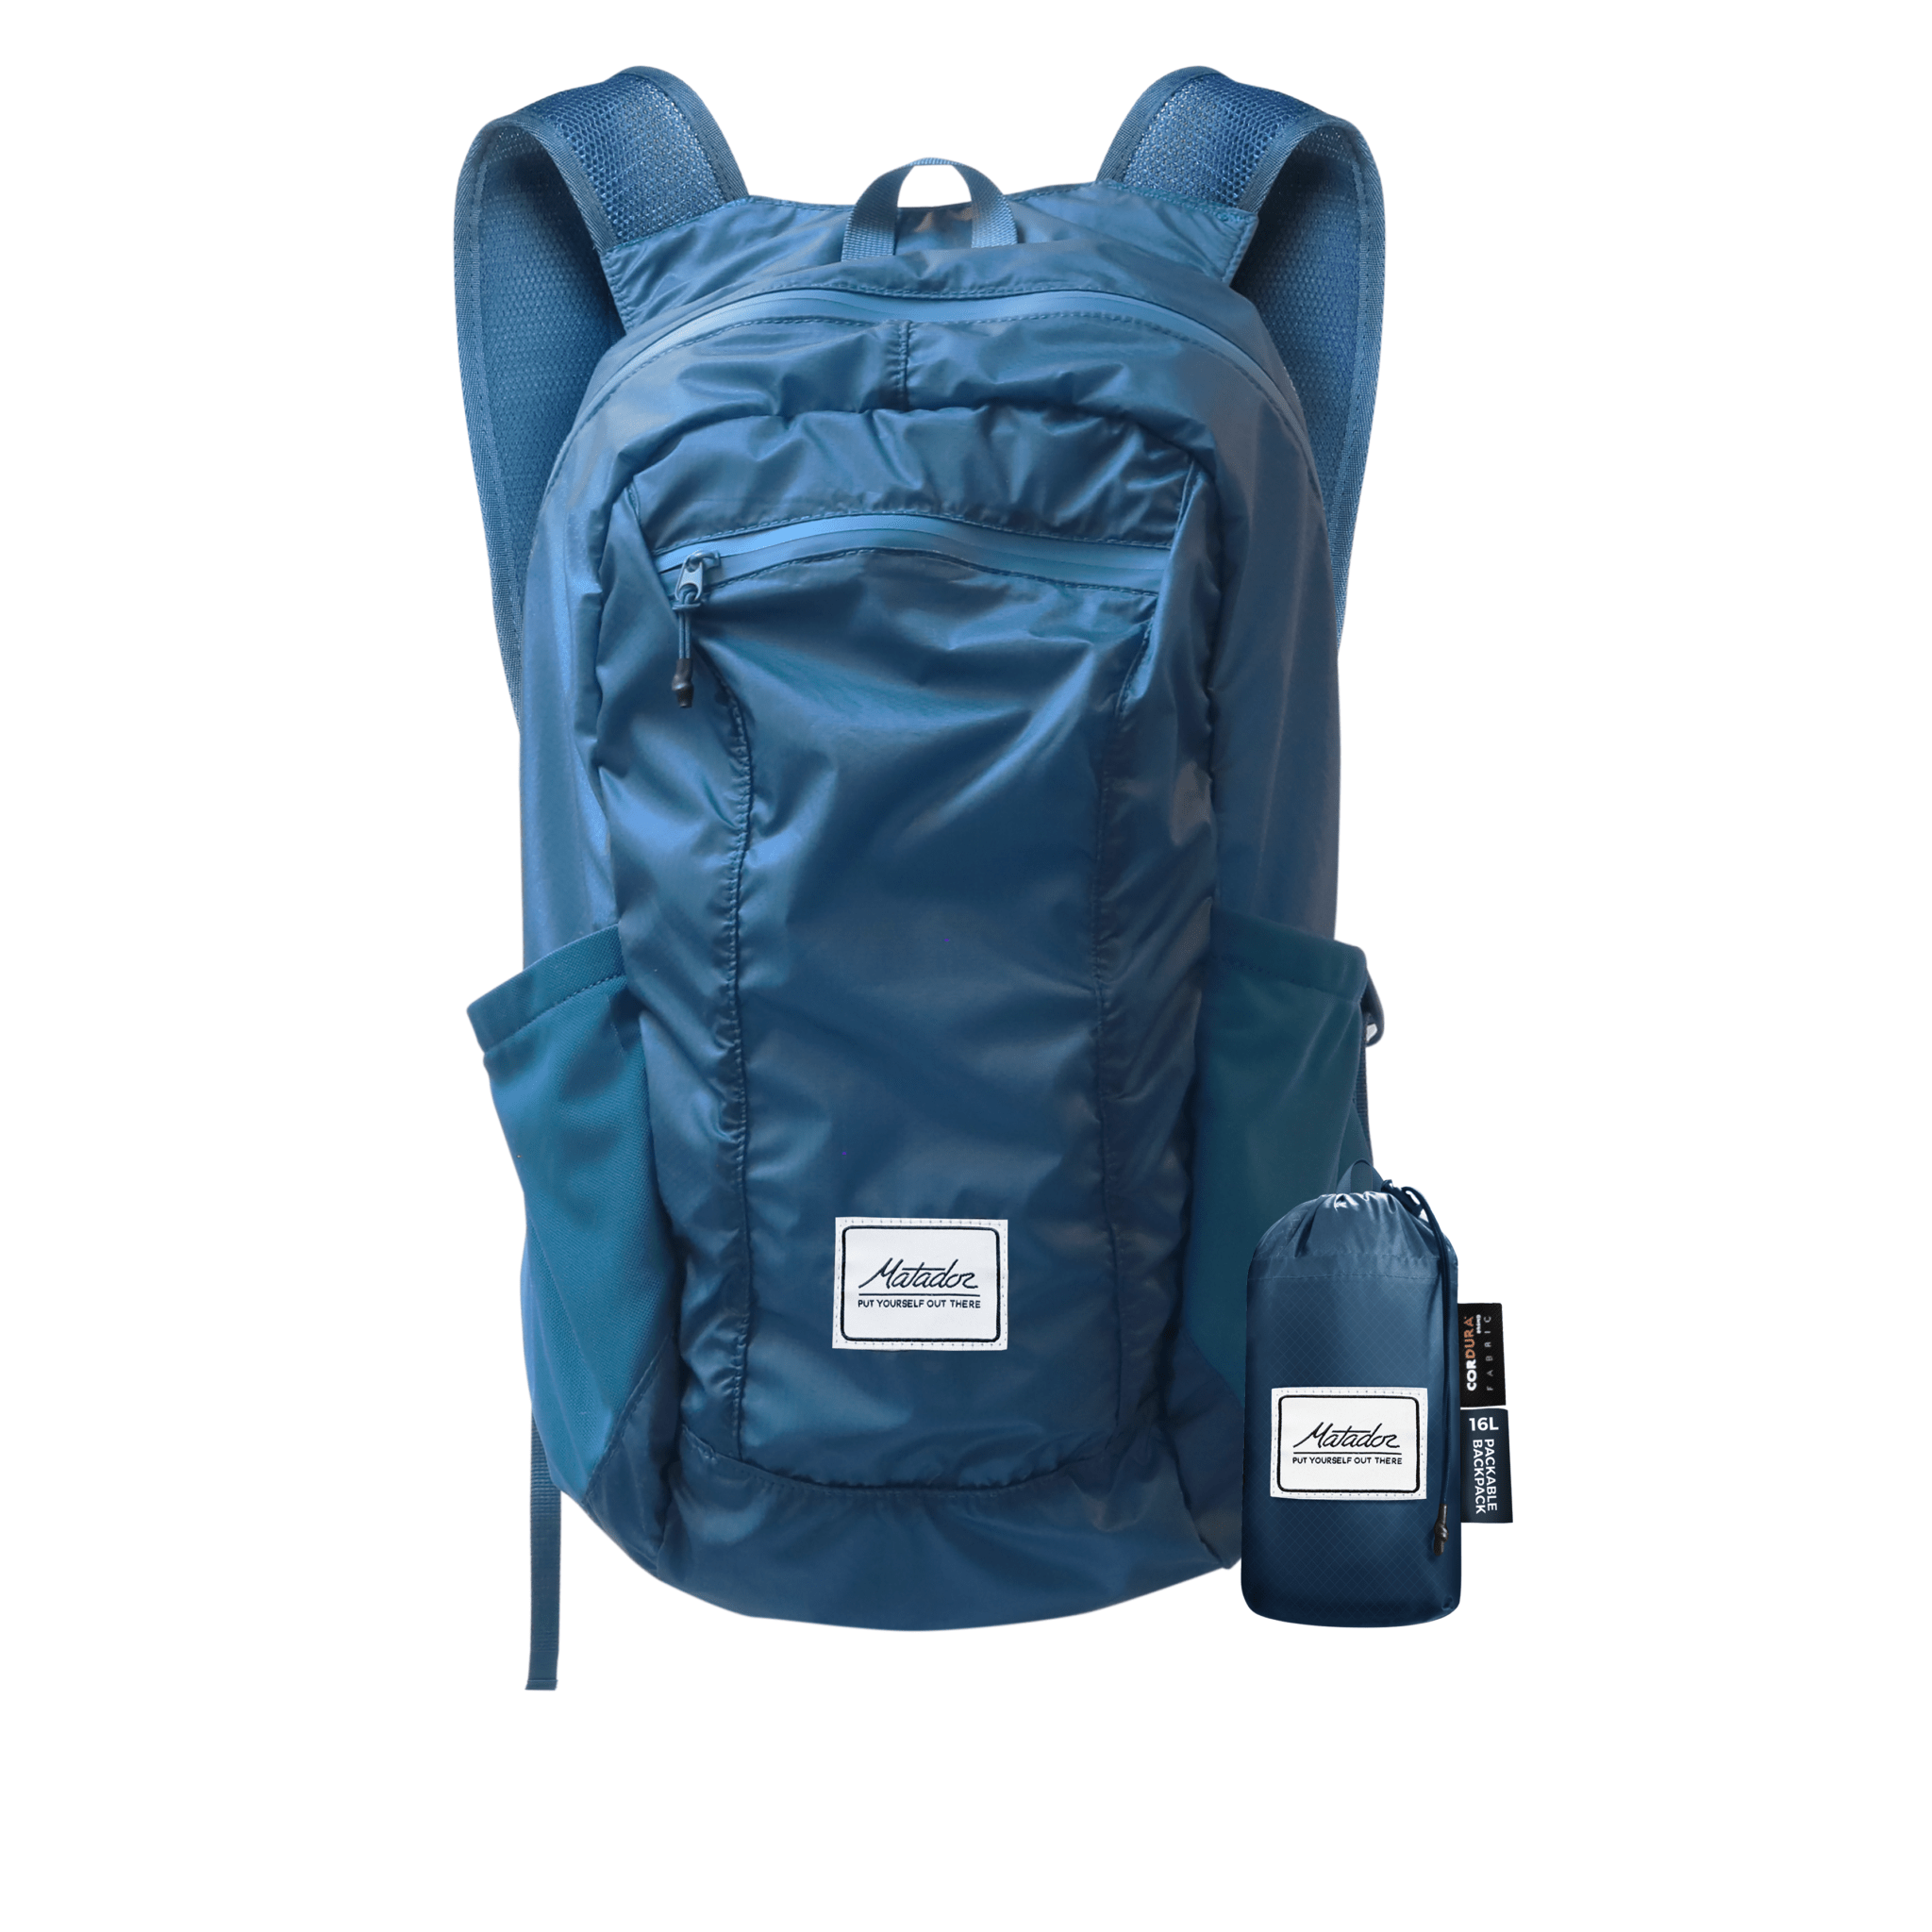 8.) Matador Daylite 16 Packable Backpack - Our go to day bags. I travel everywhere with one of these tucked into my bag ready to use. The double mesh pockets mean that we can tackle early morning hikes with a flask of coffee and bottle of water.